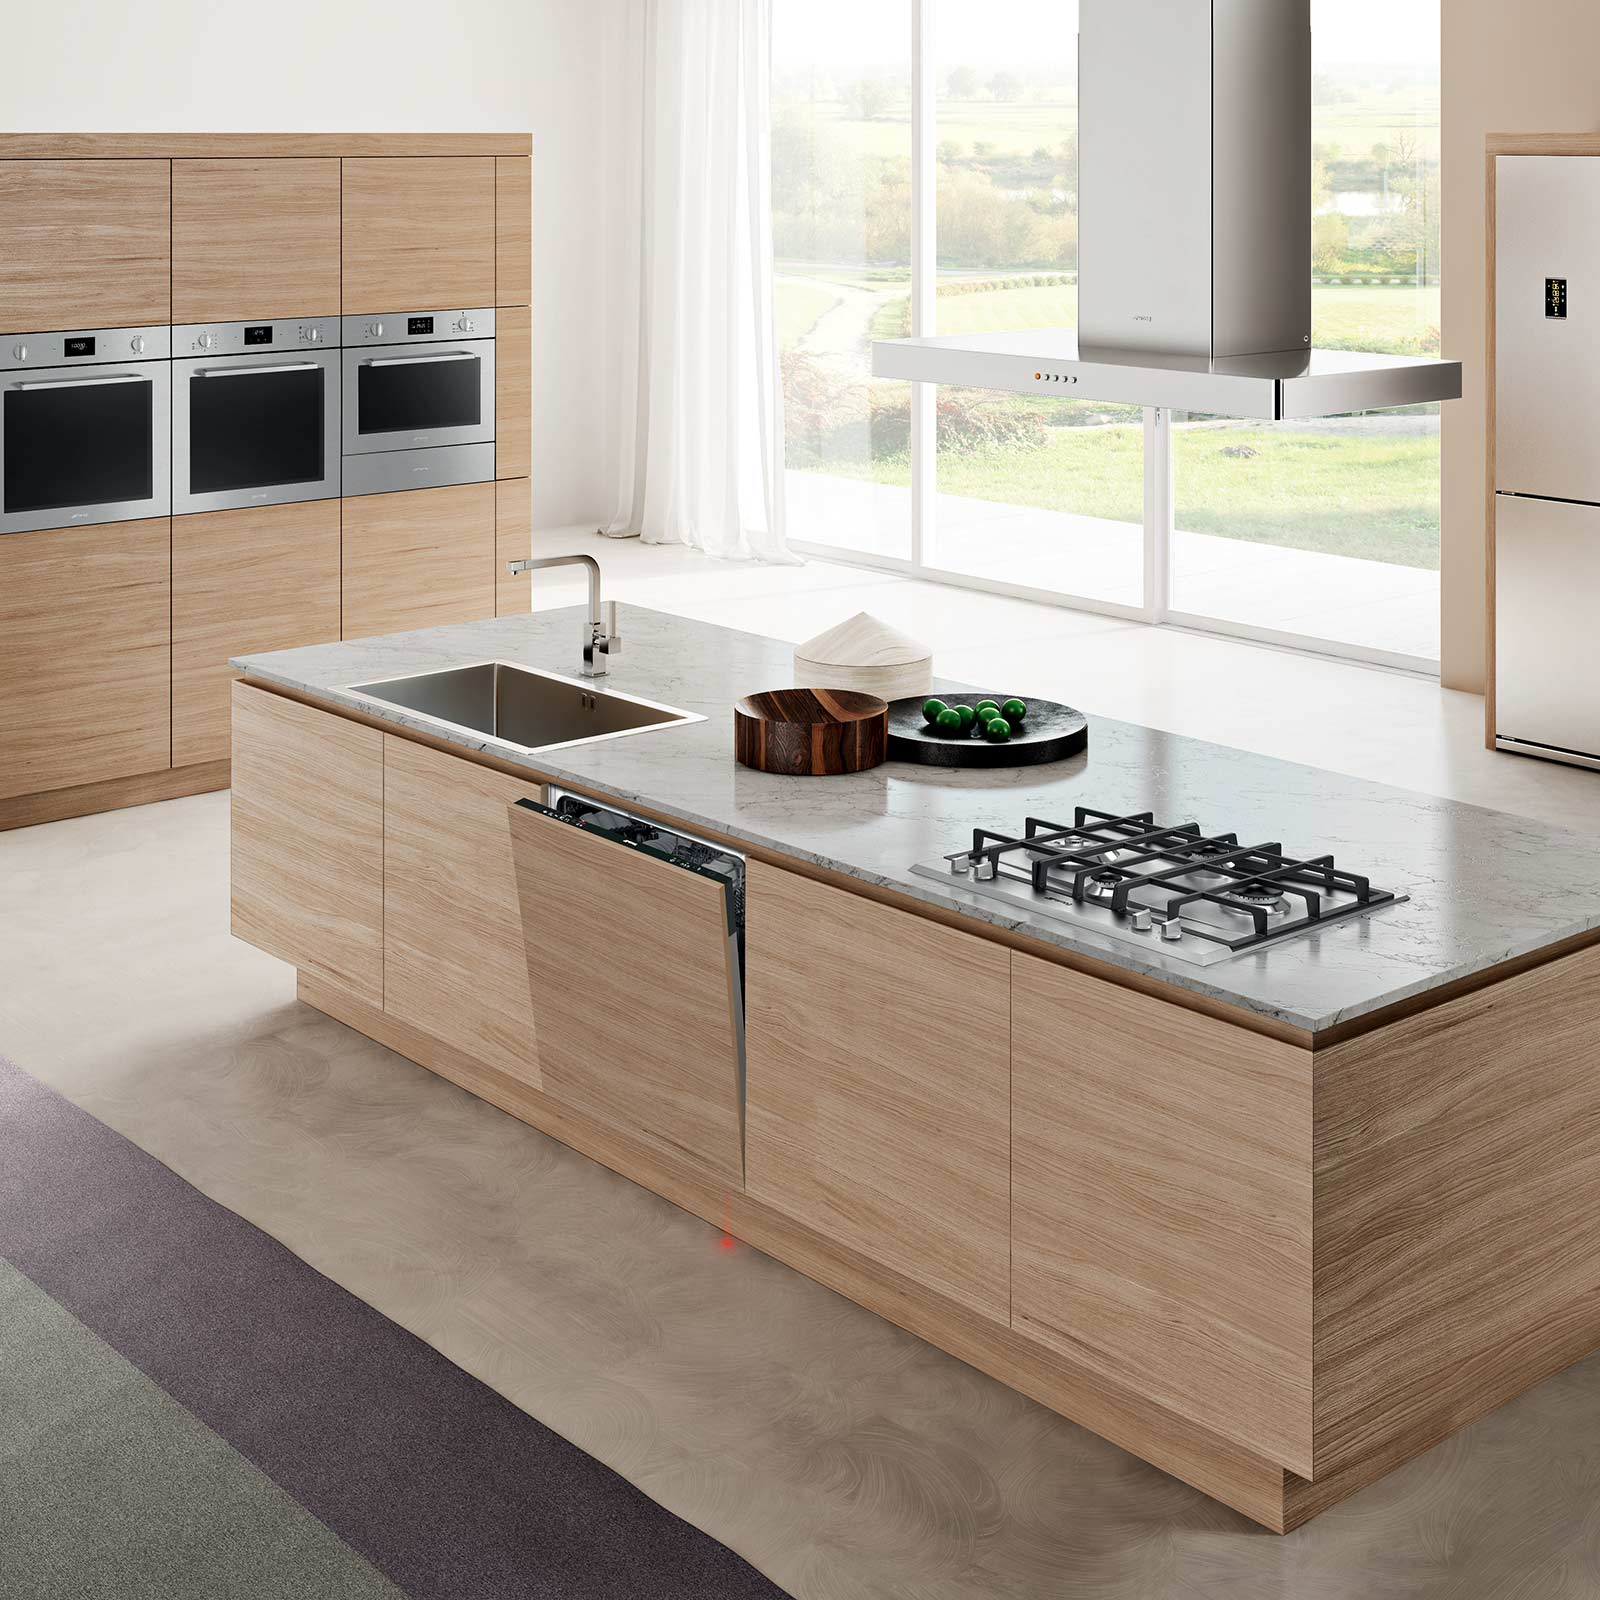 Hobs available from Hafele UK